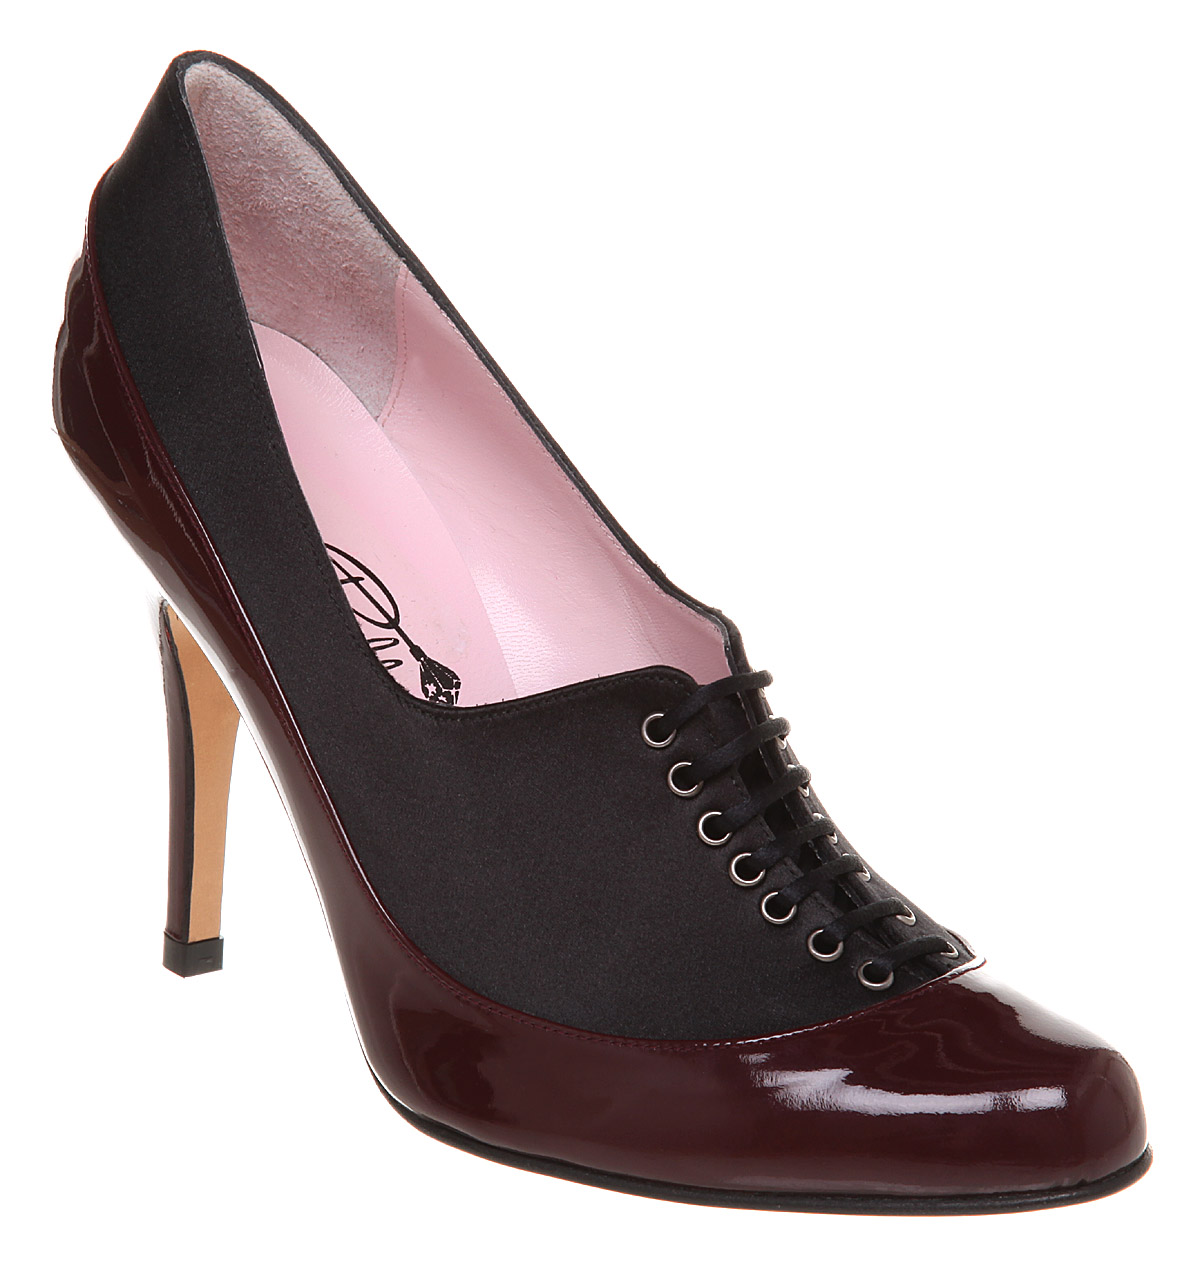 Womens-Minna-Parikka-Blaize-Lace-Toe-Court-Blk-Sat-burg-Pt